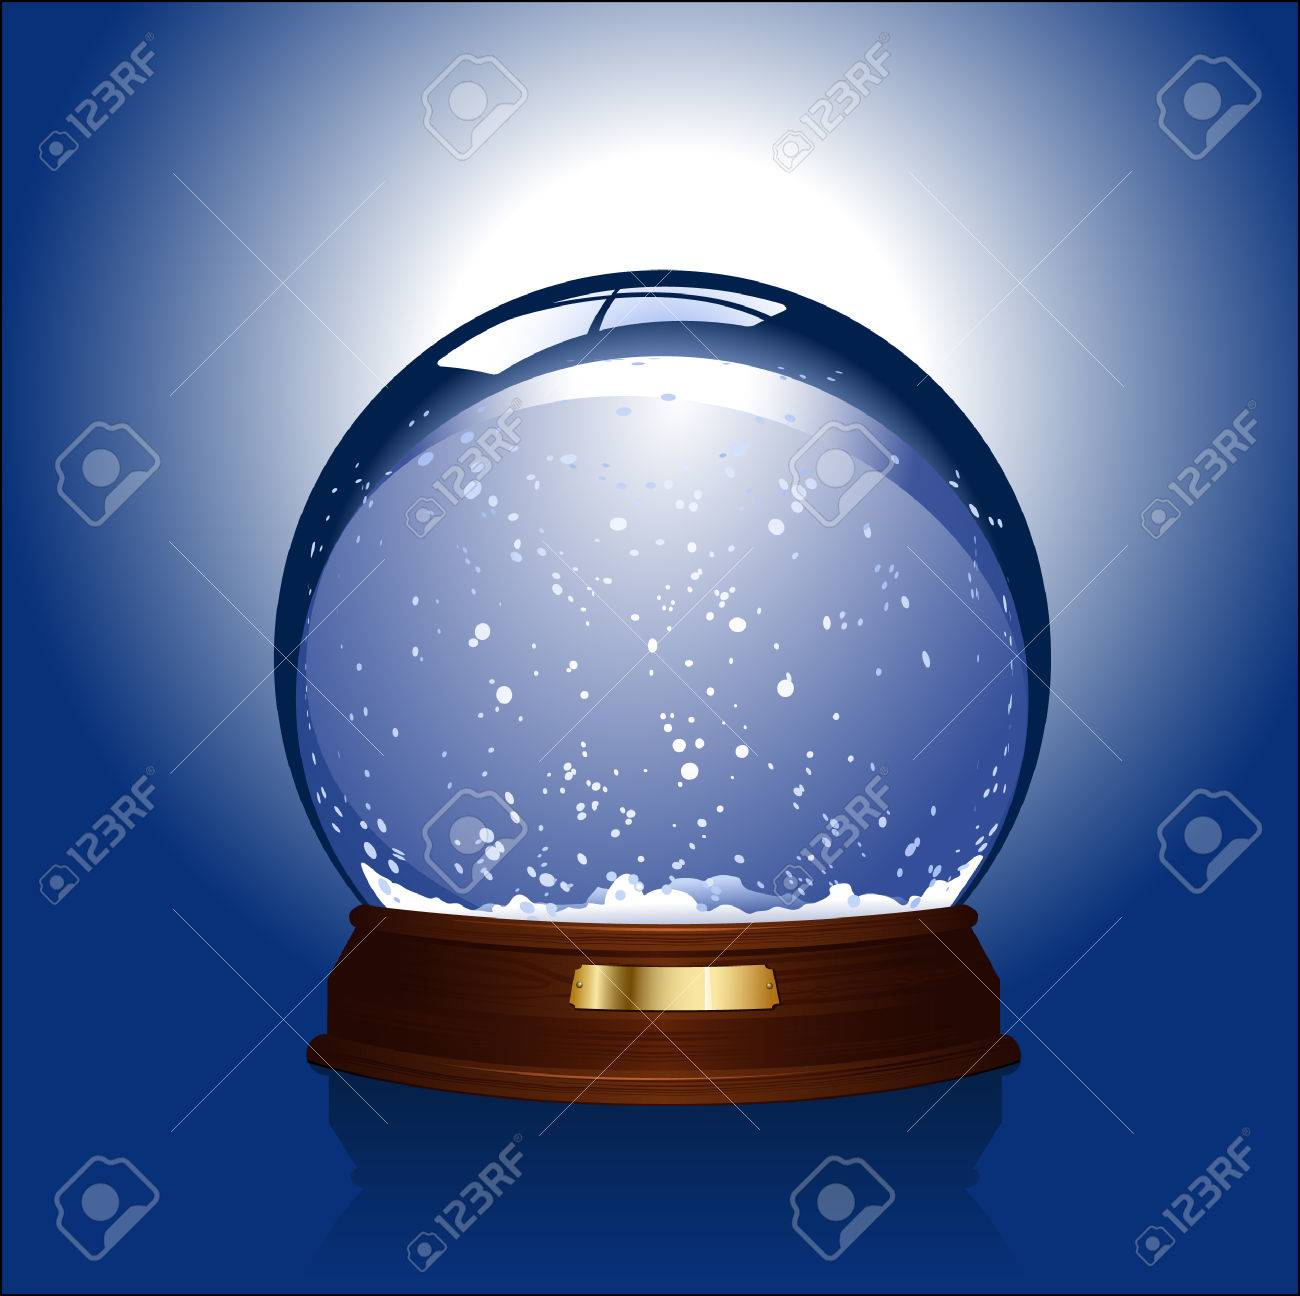 realistic illustration of an empty snow-globe - customize with your own object! - 3400339